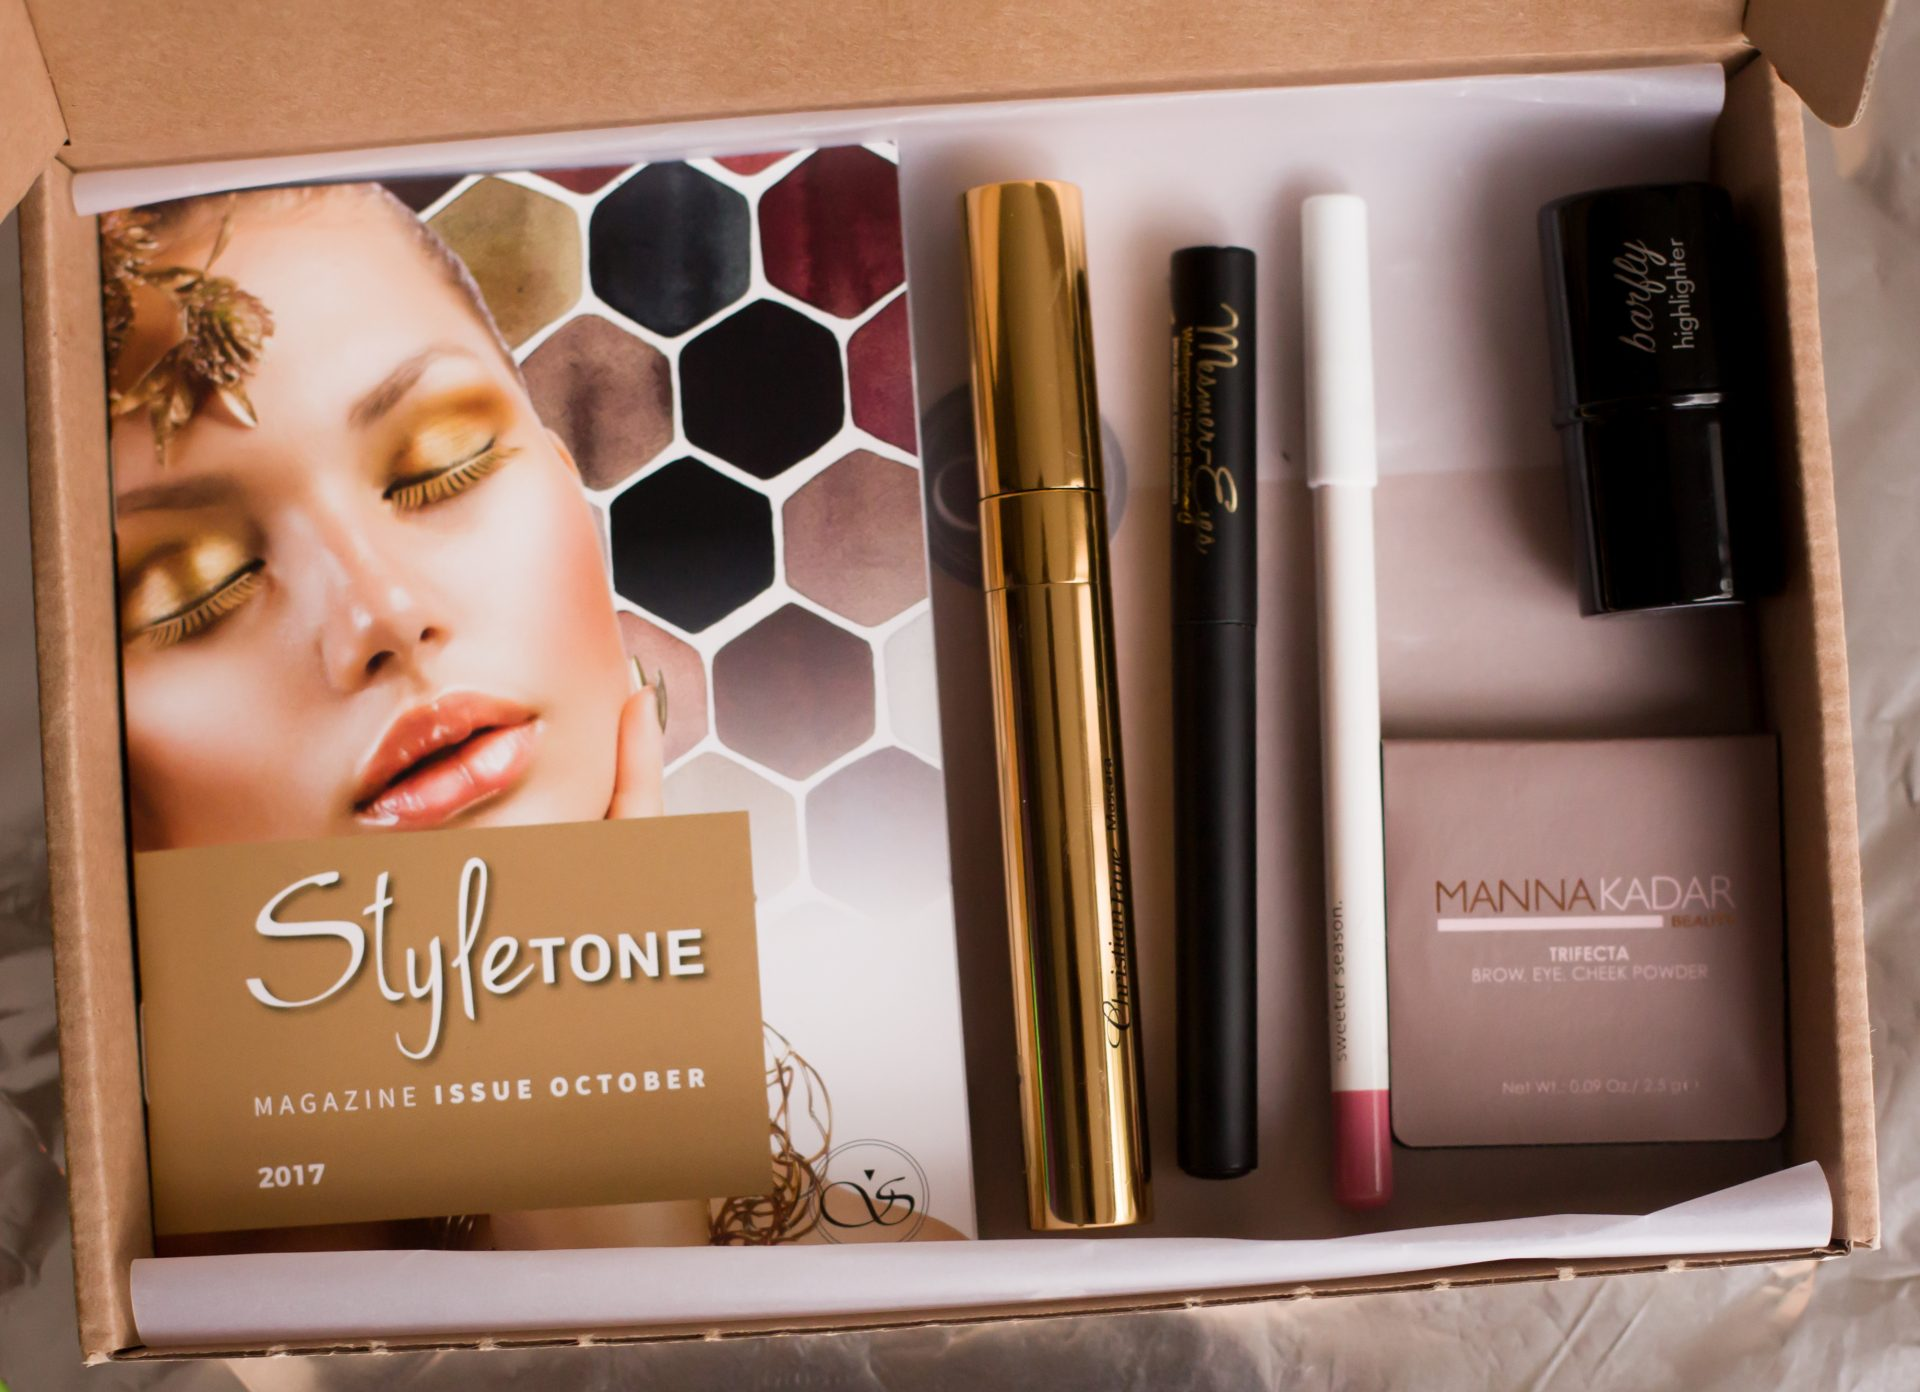 Alle producten in de box - StyleTone box oktober